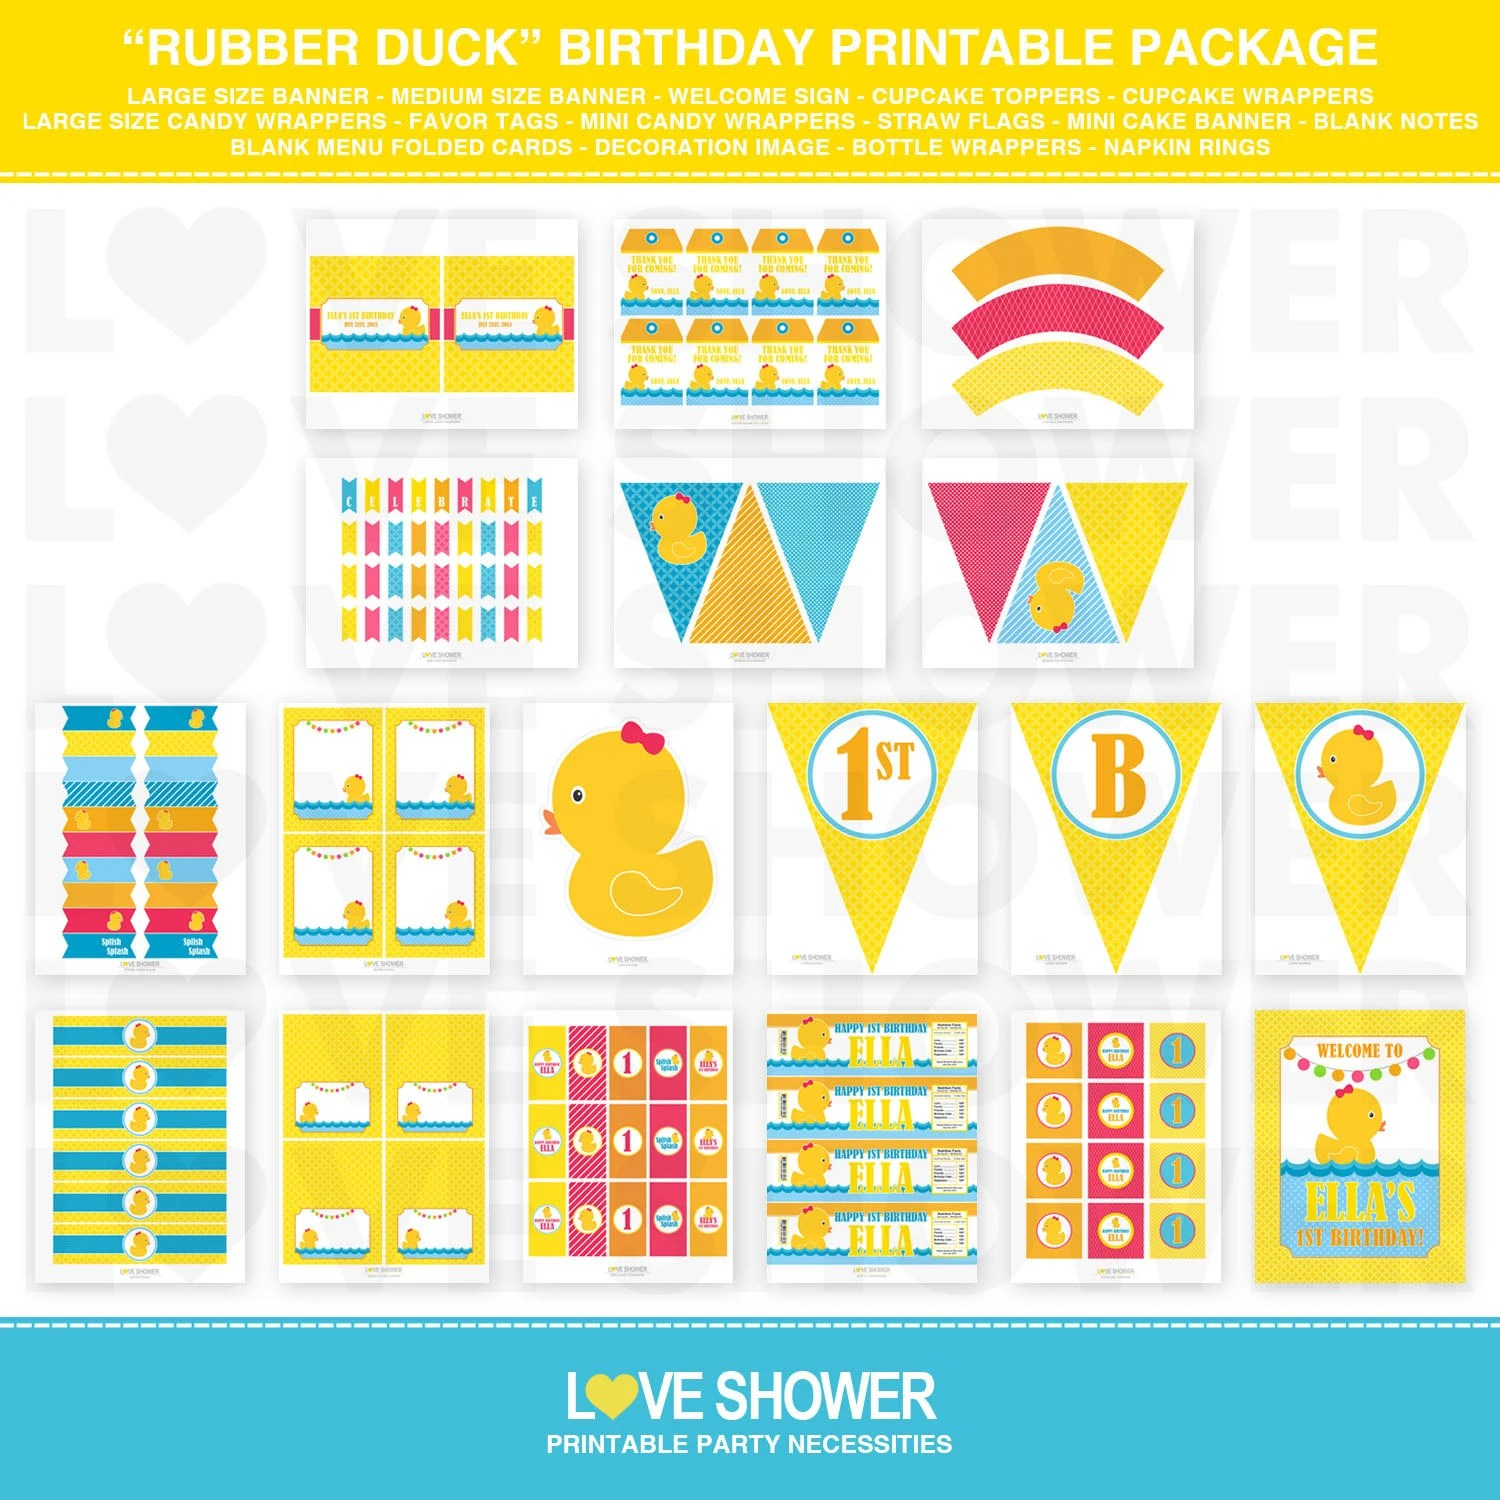 RUBBER DUCK Birthday Party Printables Big Full Package - 15 Items